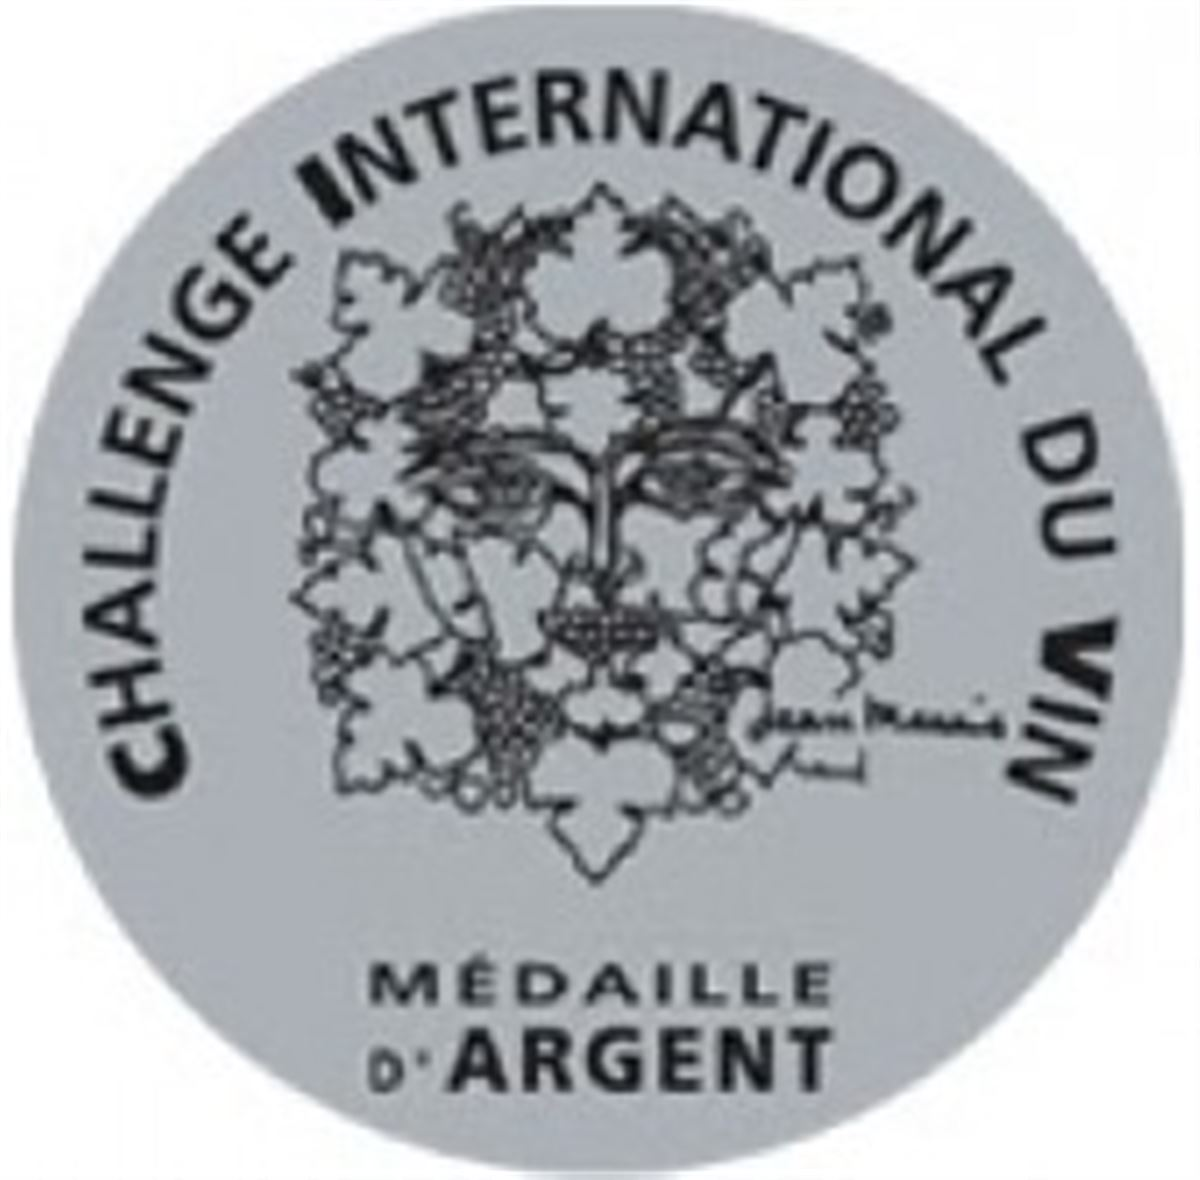 Billedresultat for Challenge International du Vin 2018 medaille argent